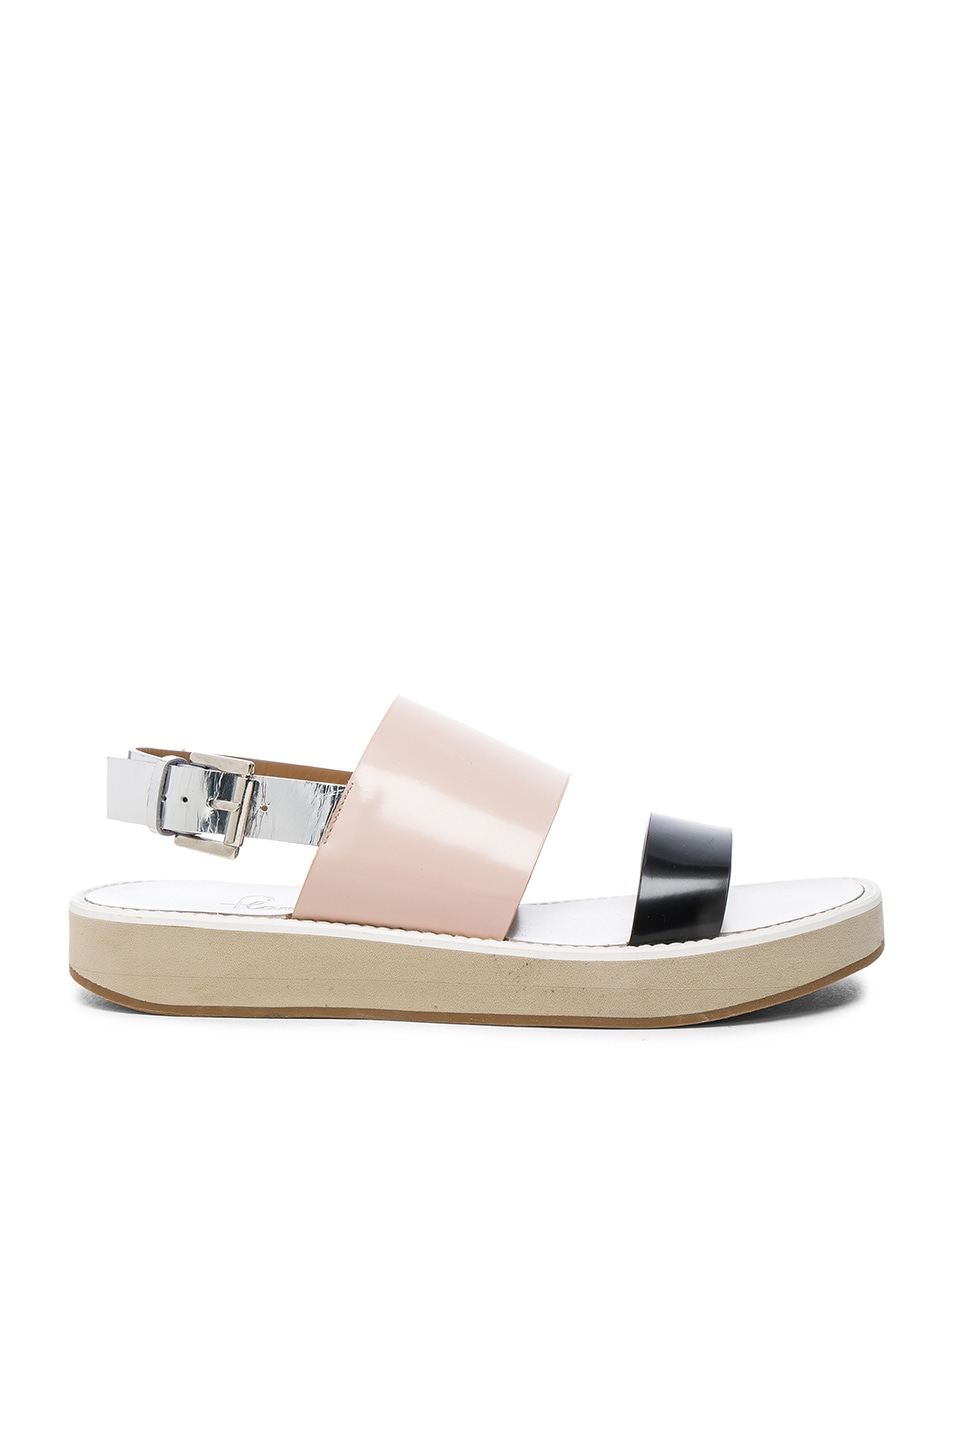 Image 1 of Flamingos Leather Aqualina Sandals in Black, Nude & Silver